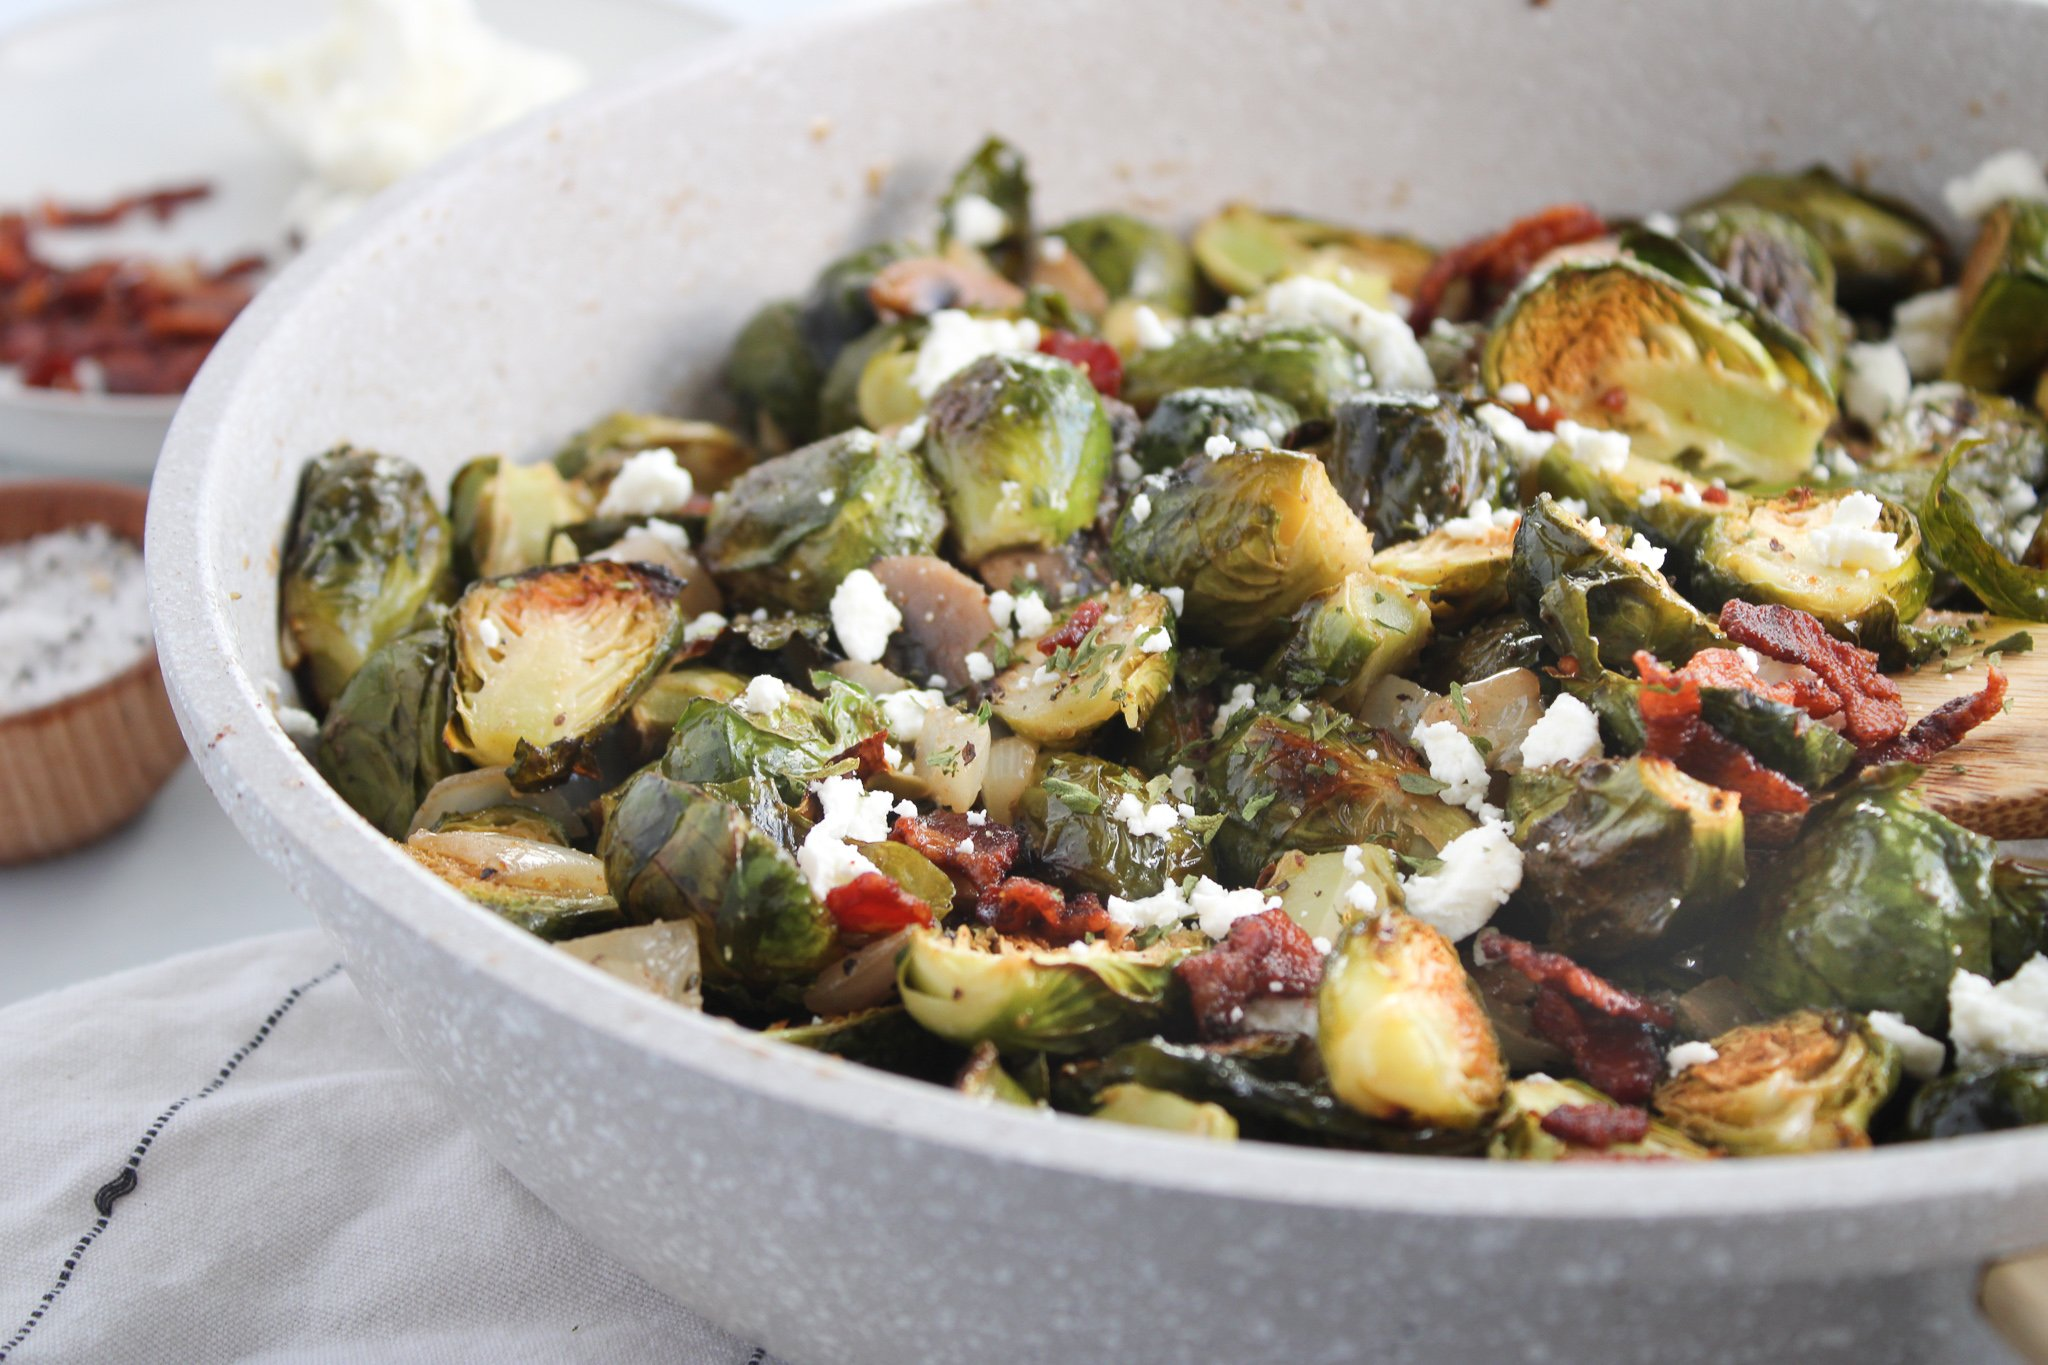 Brussel sprouts with bacon, mushrooms, onions, in a honey dijon sauce with crumbled goat cheese